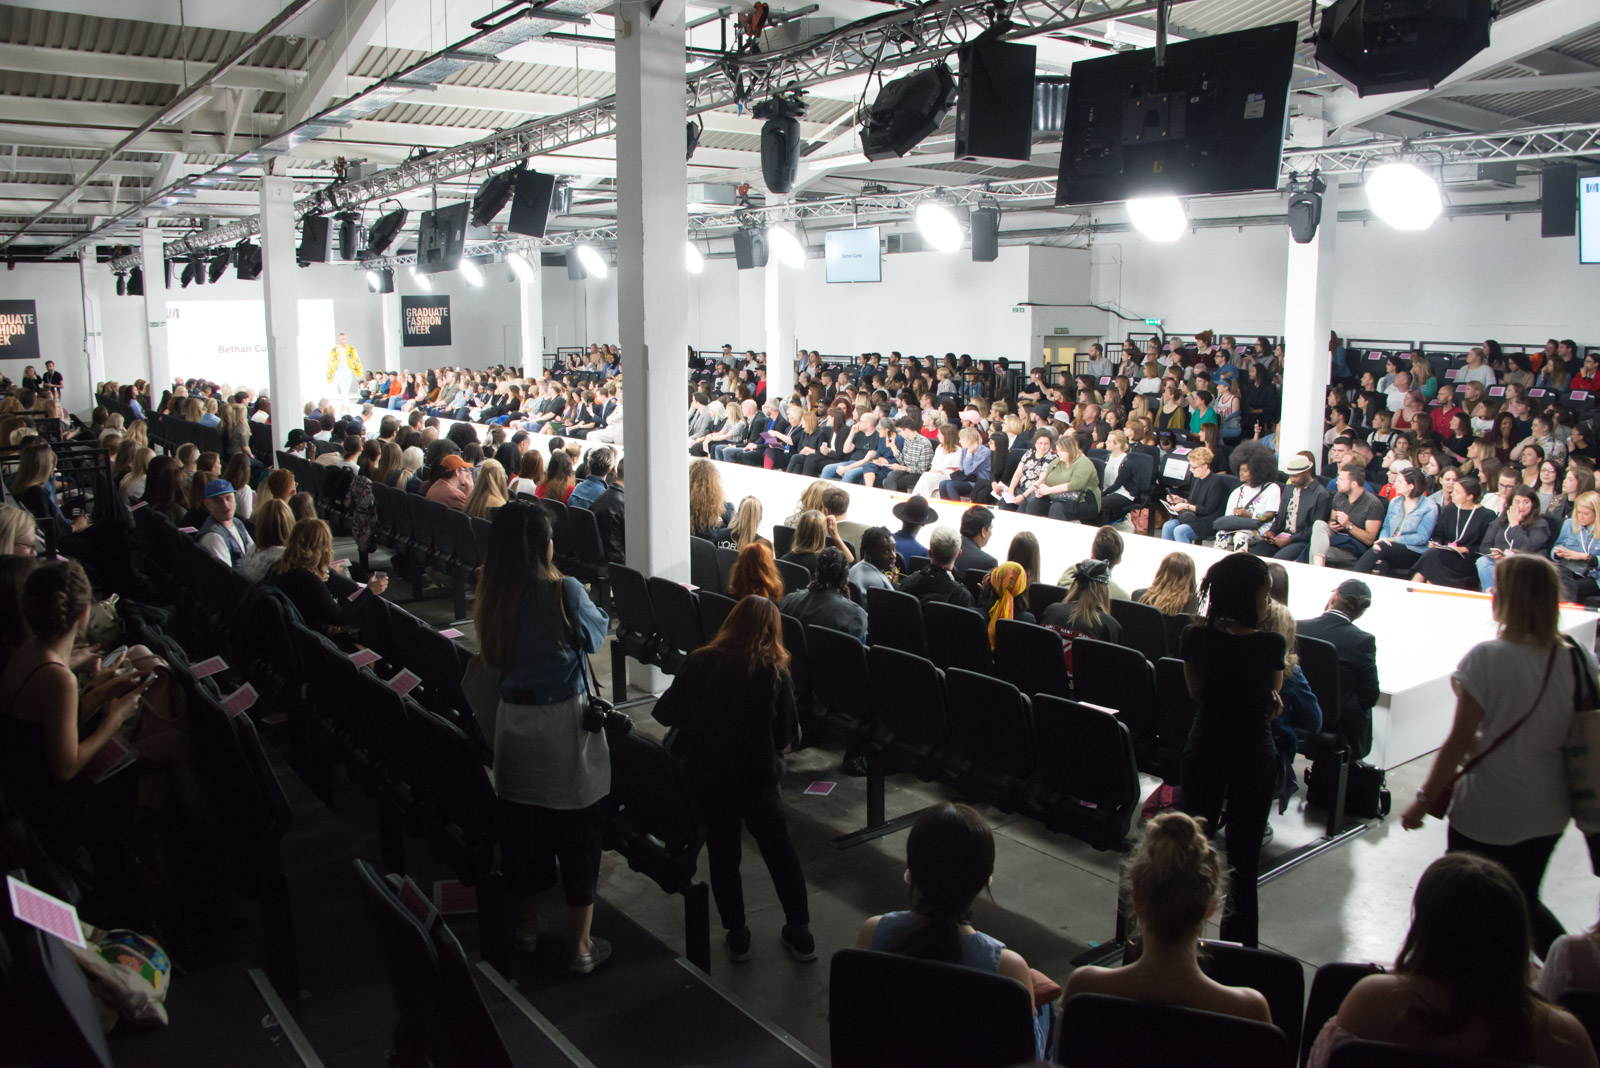 manchester crowd and catwalk 050617 2 image by tina mayr_.jpg